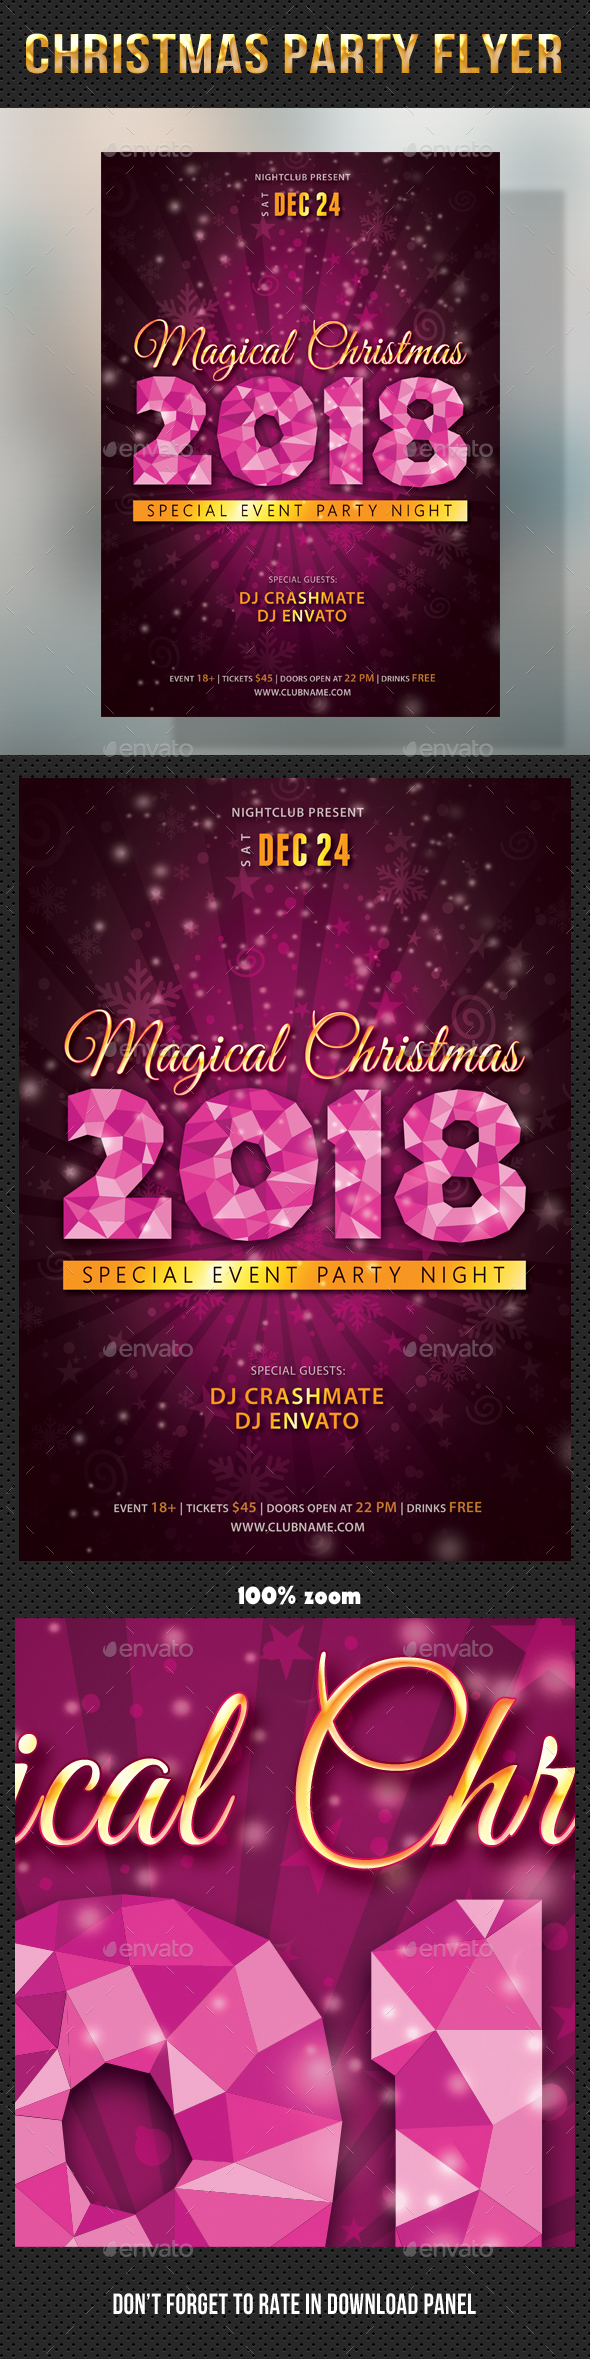 Christmas Party Flyer 02 - Holidays Events